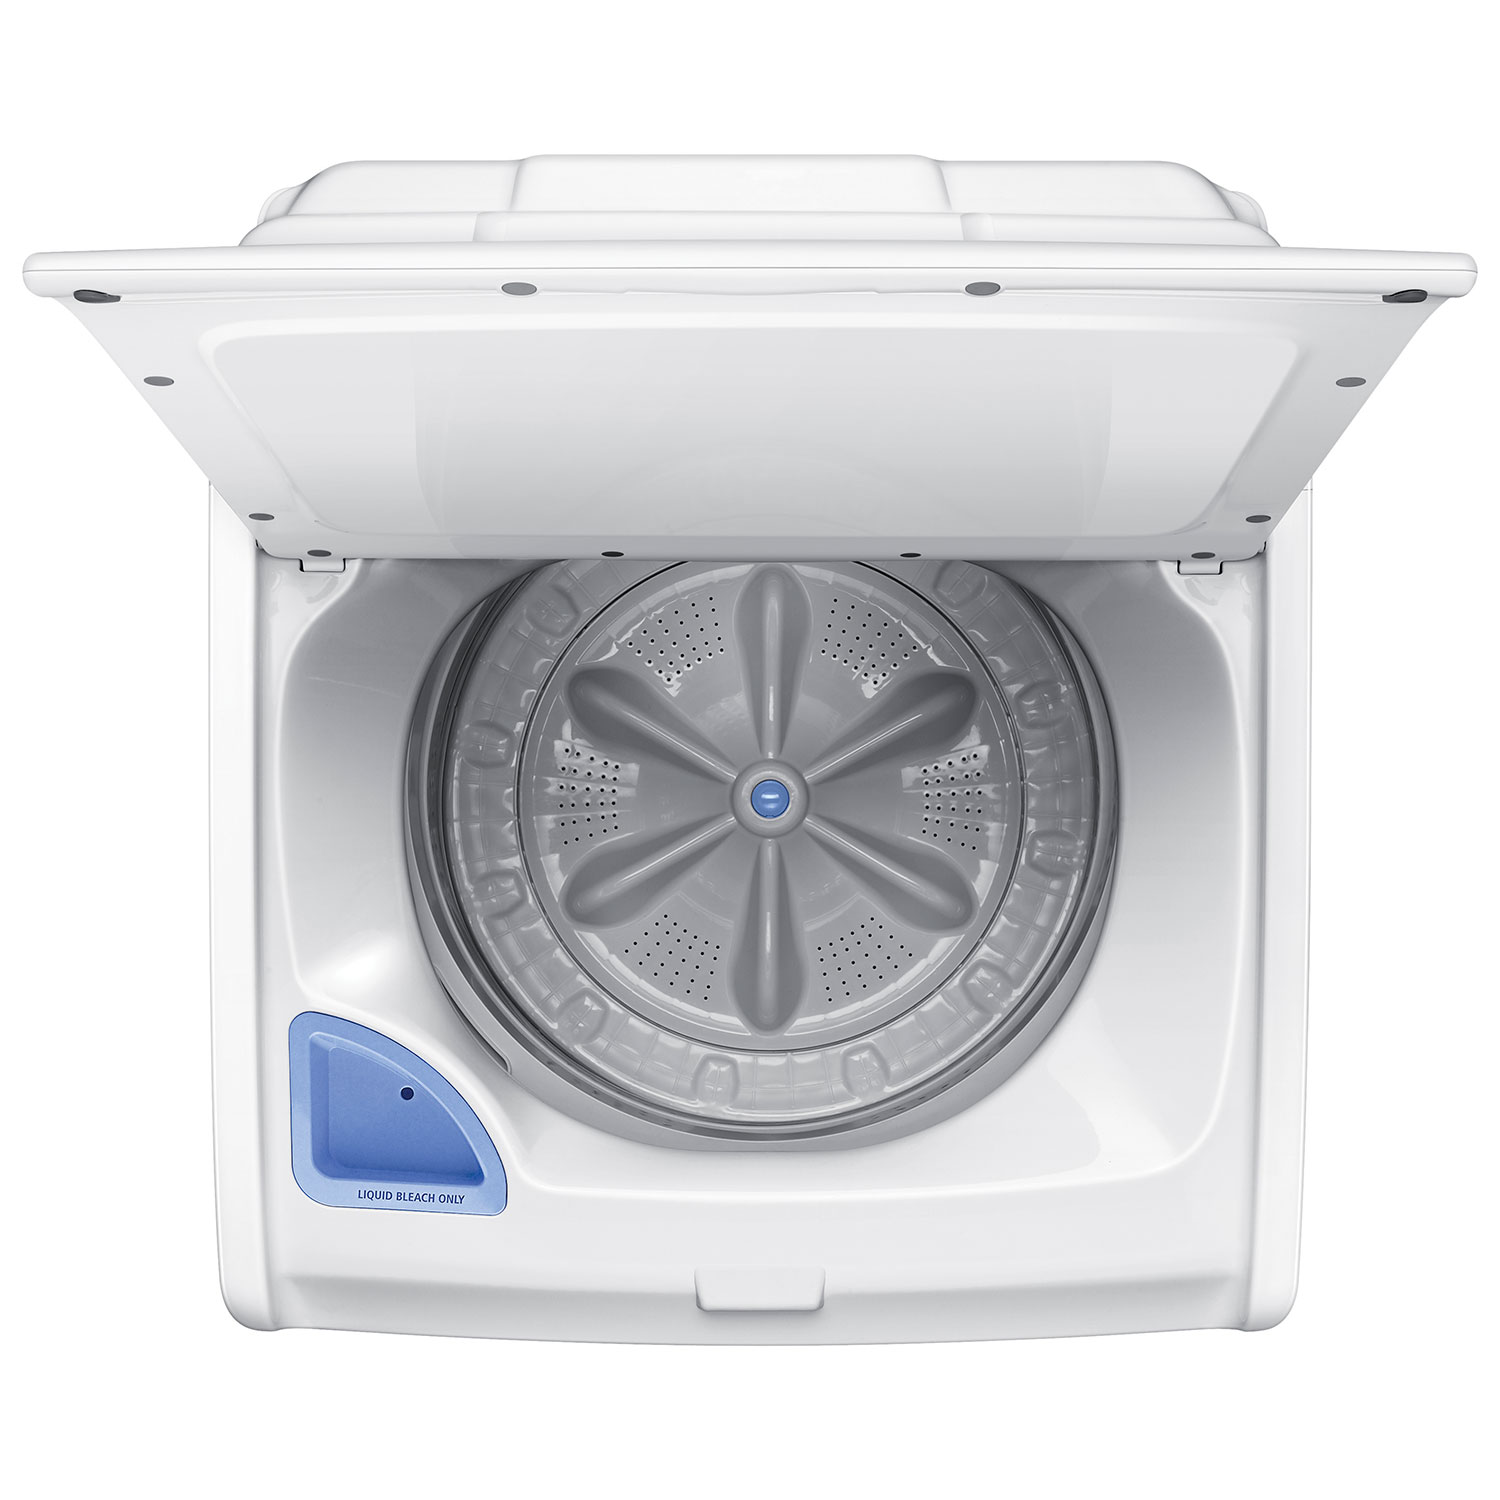 Topload Washer Samsung 49 Cu Ft High Efficiency Top Load Washer Wa40j3000aw